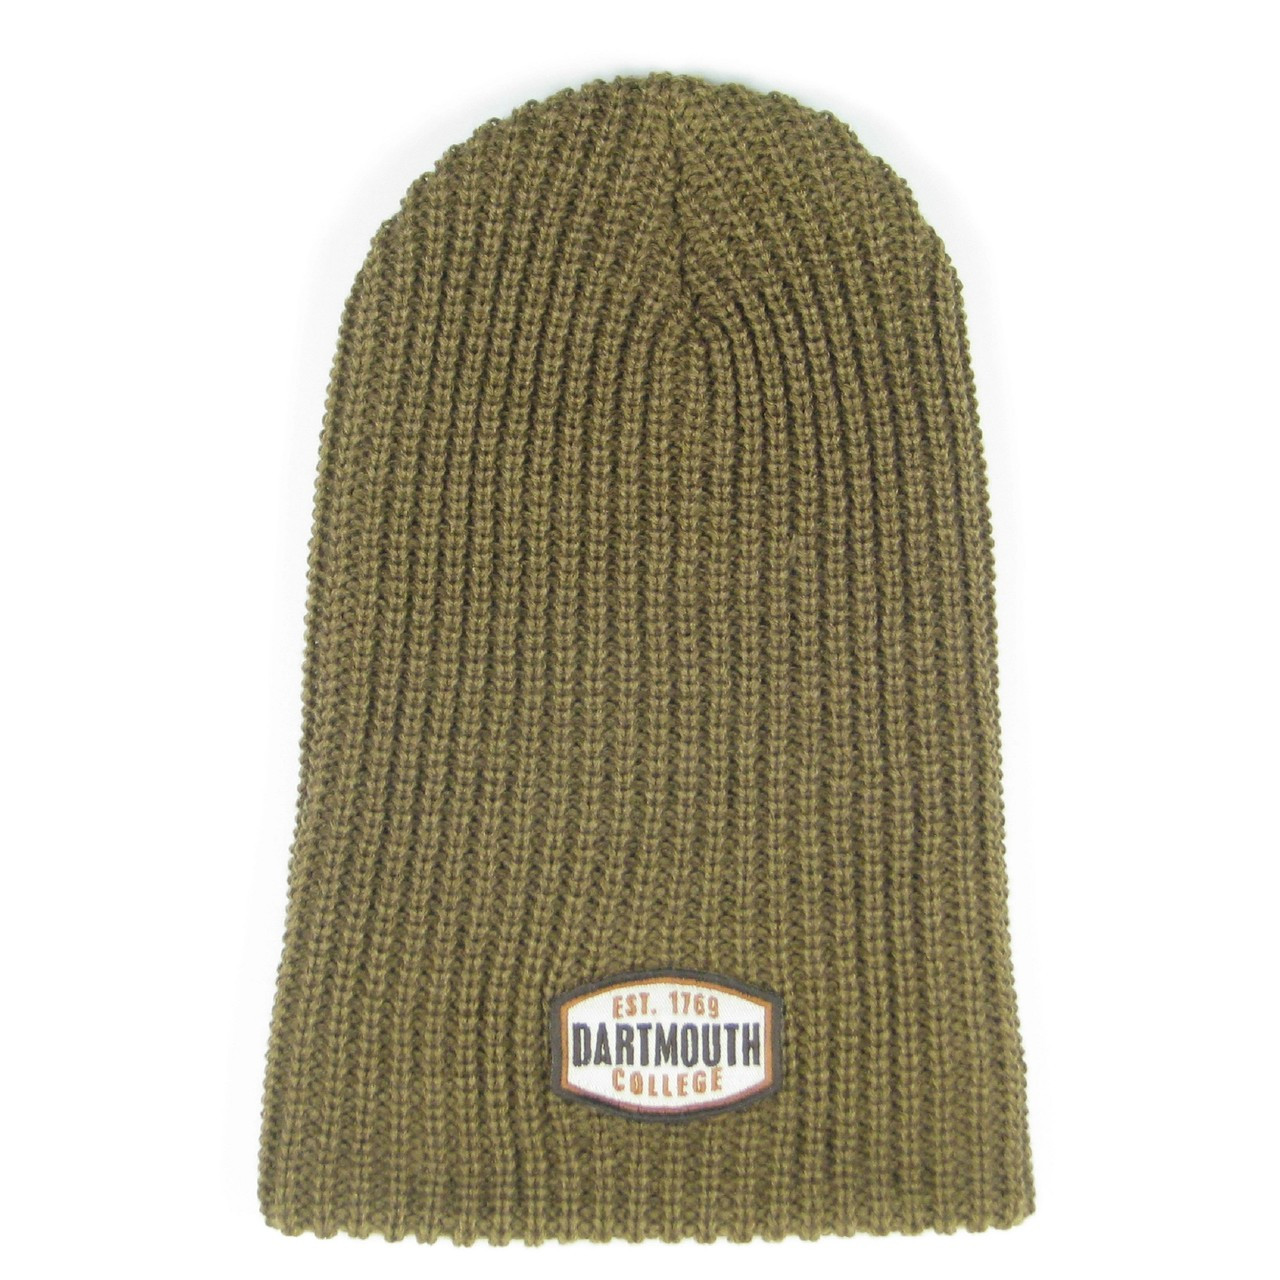 0d30982d03f Lumberjack Knit Hat - Dartmouth Co-op